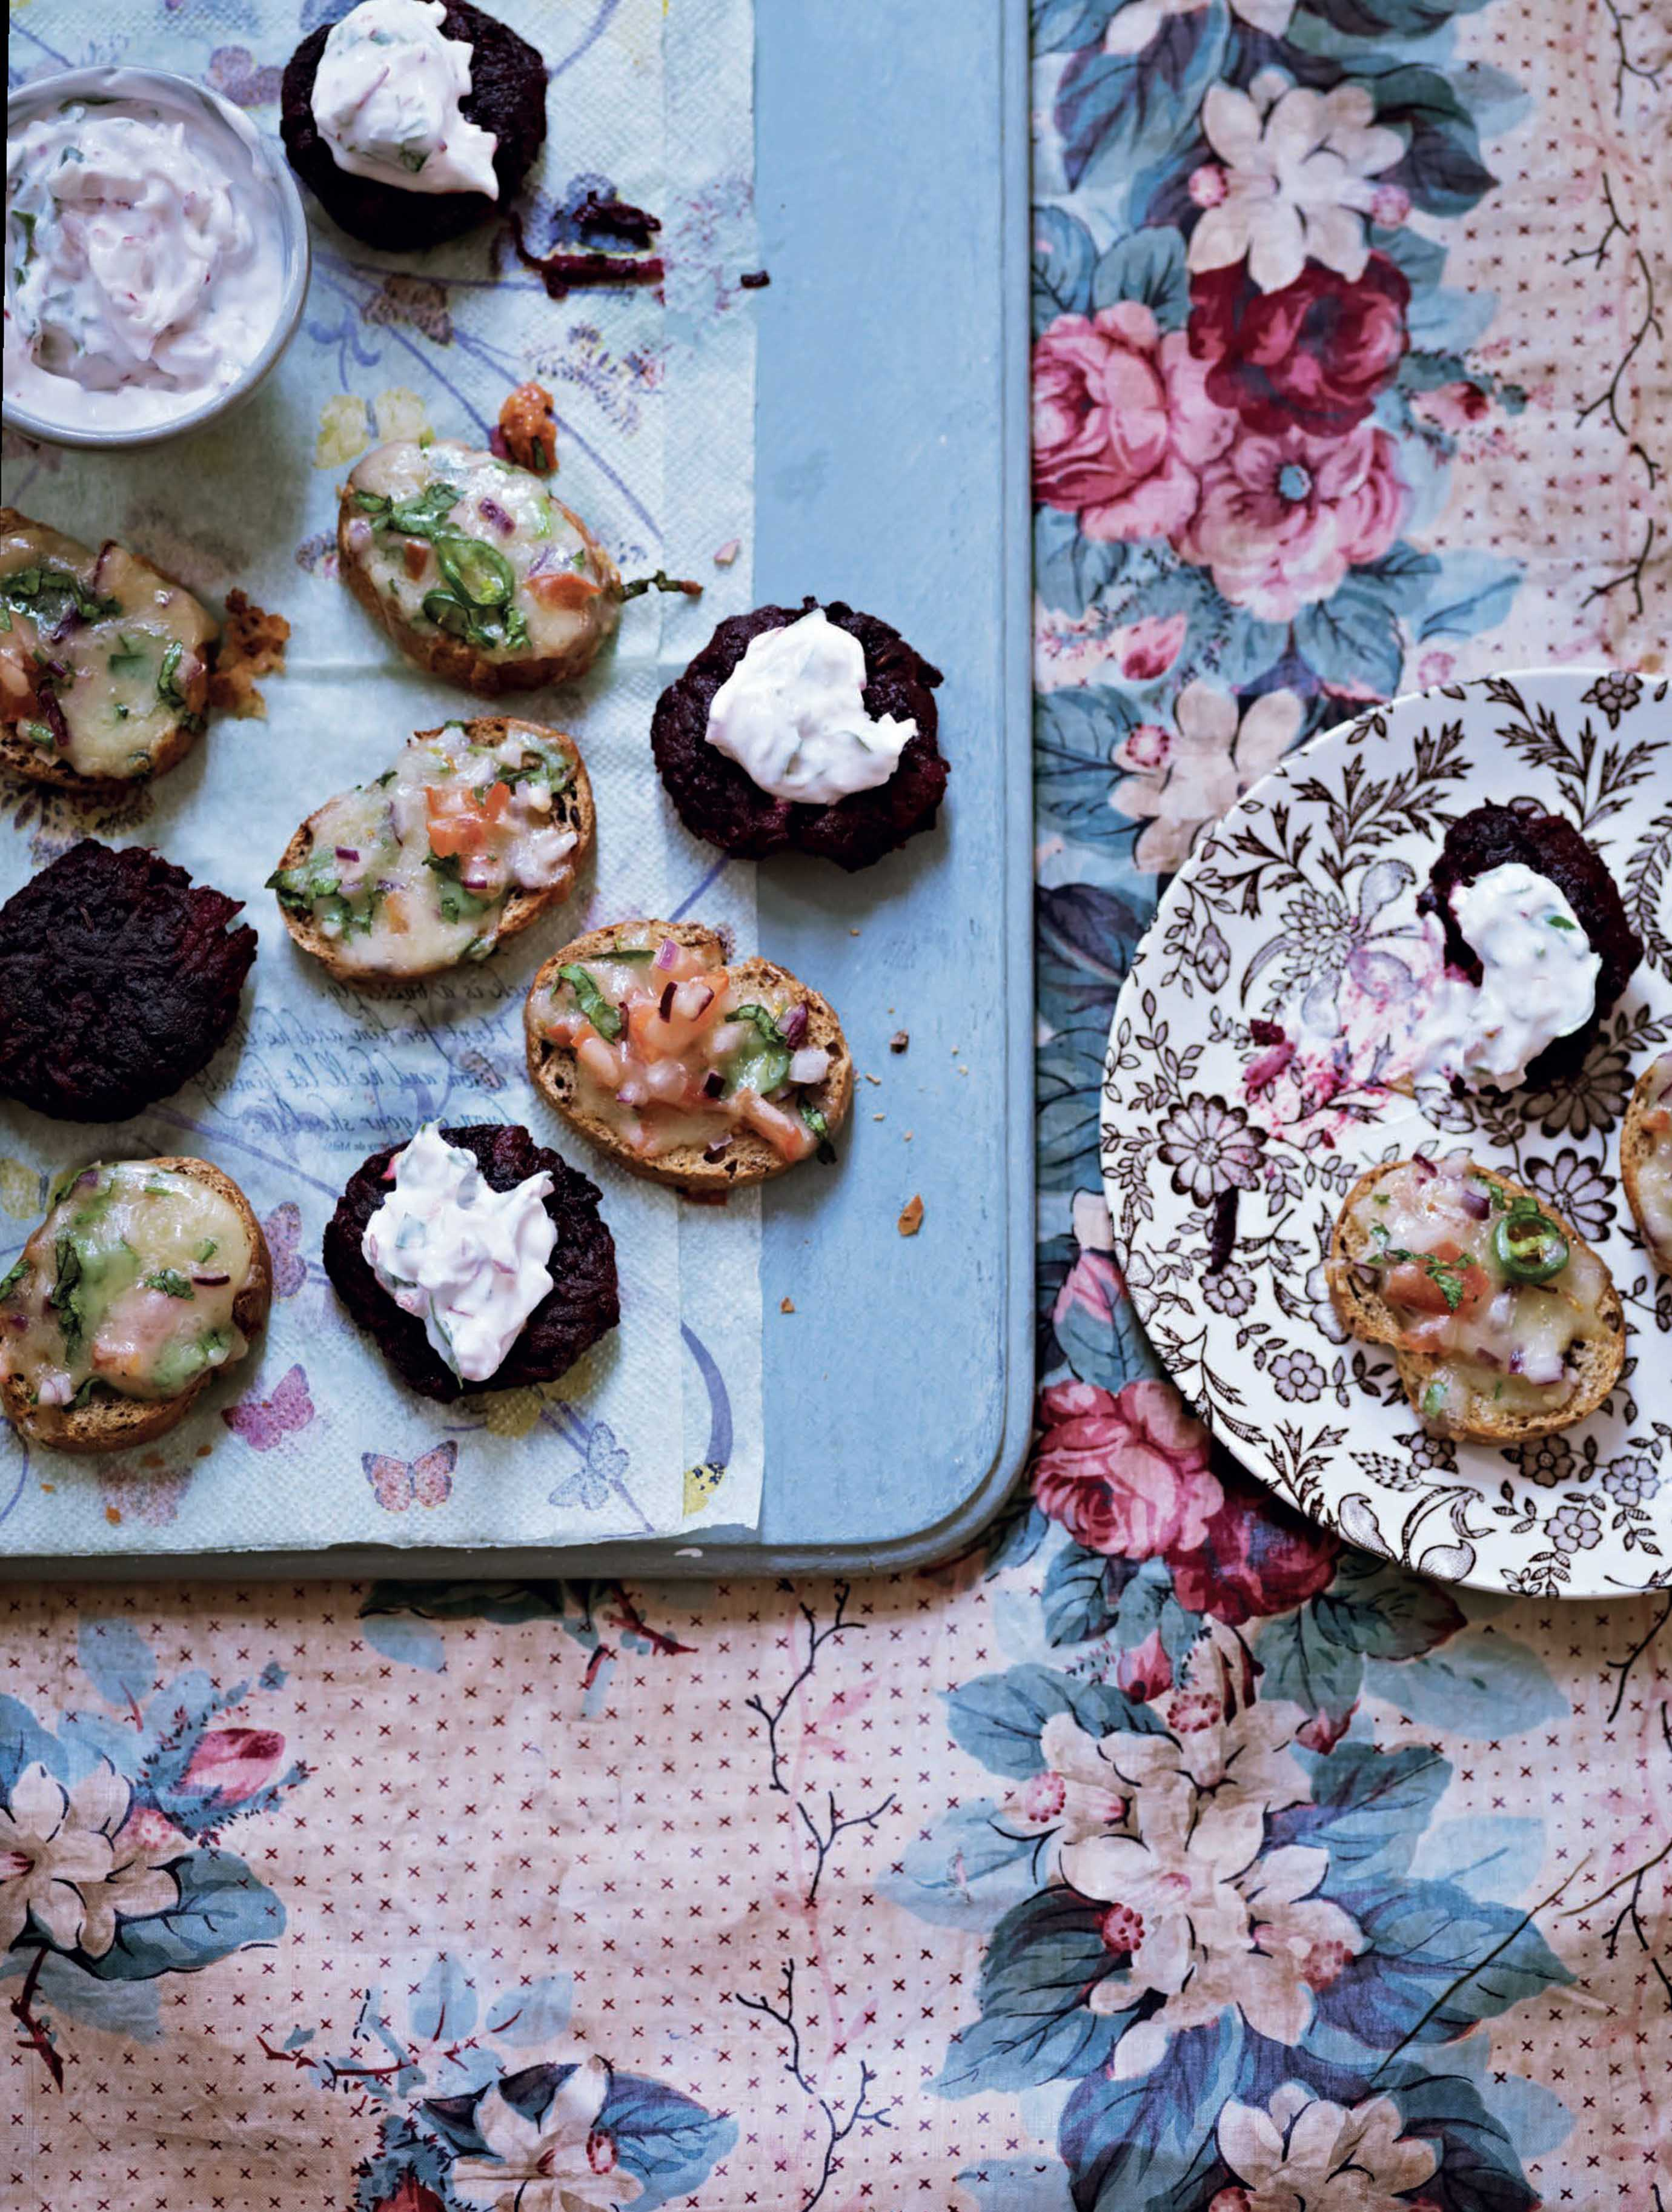 Mini beetroot cakes with radish and yogurt 'chutney'